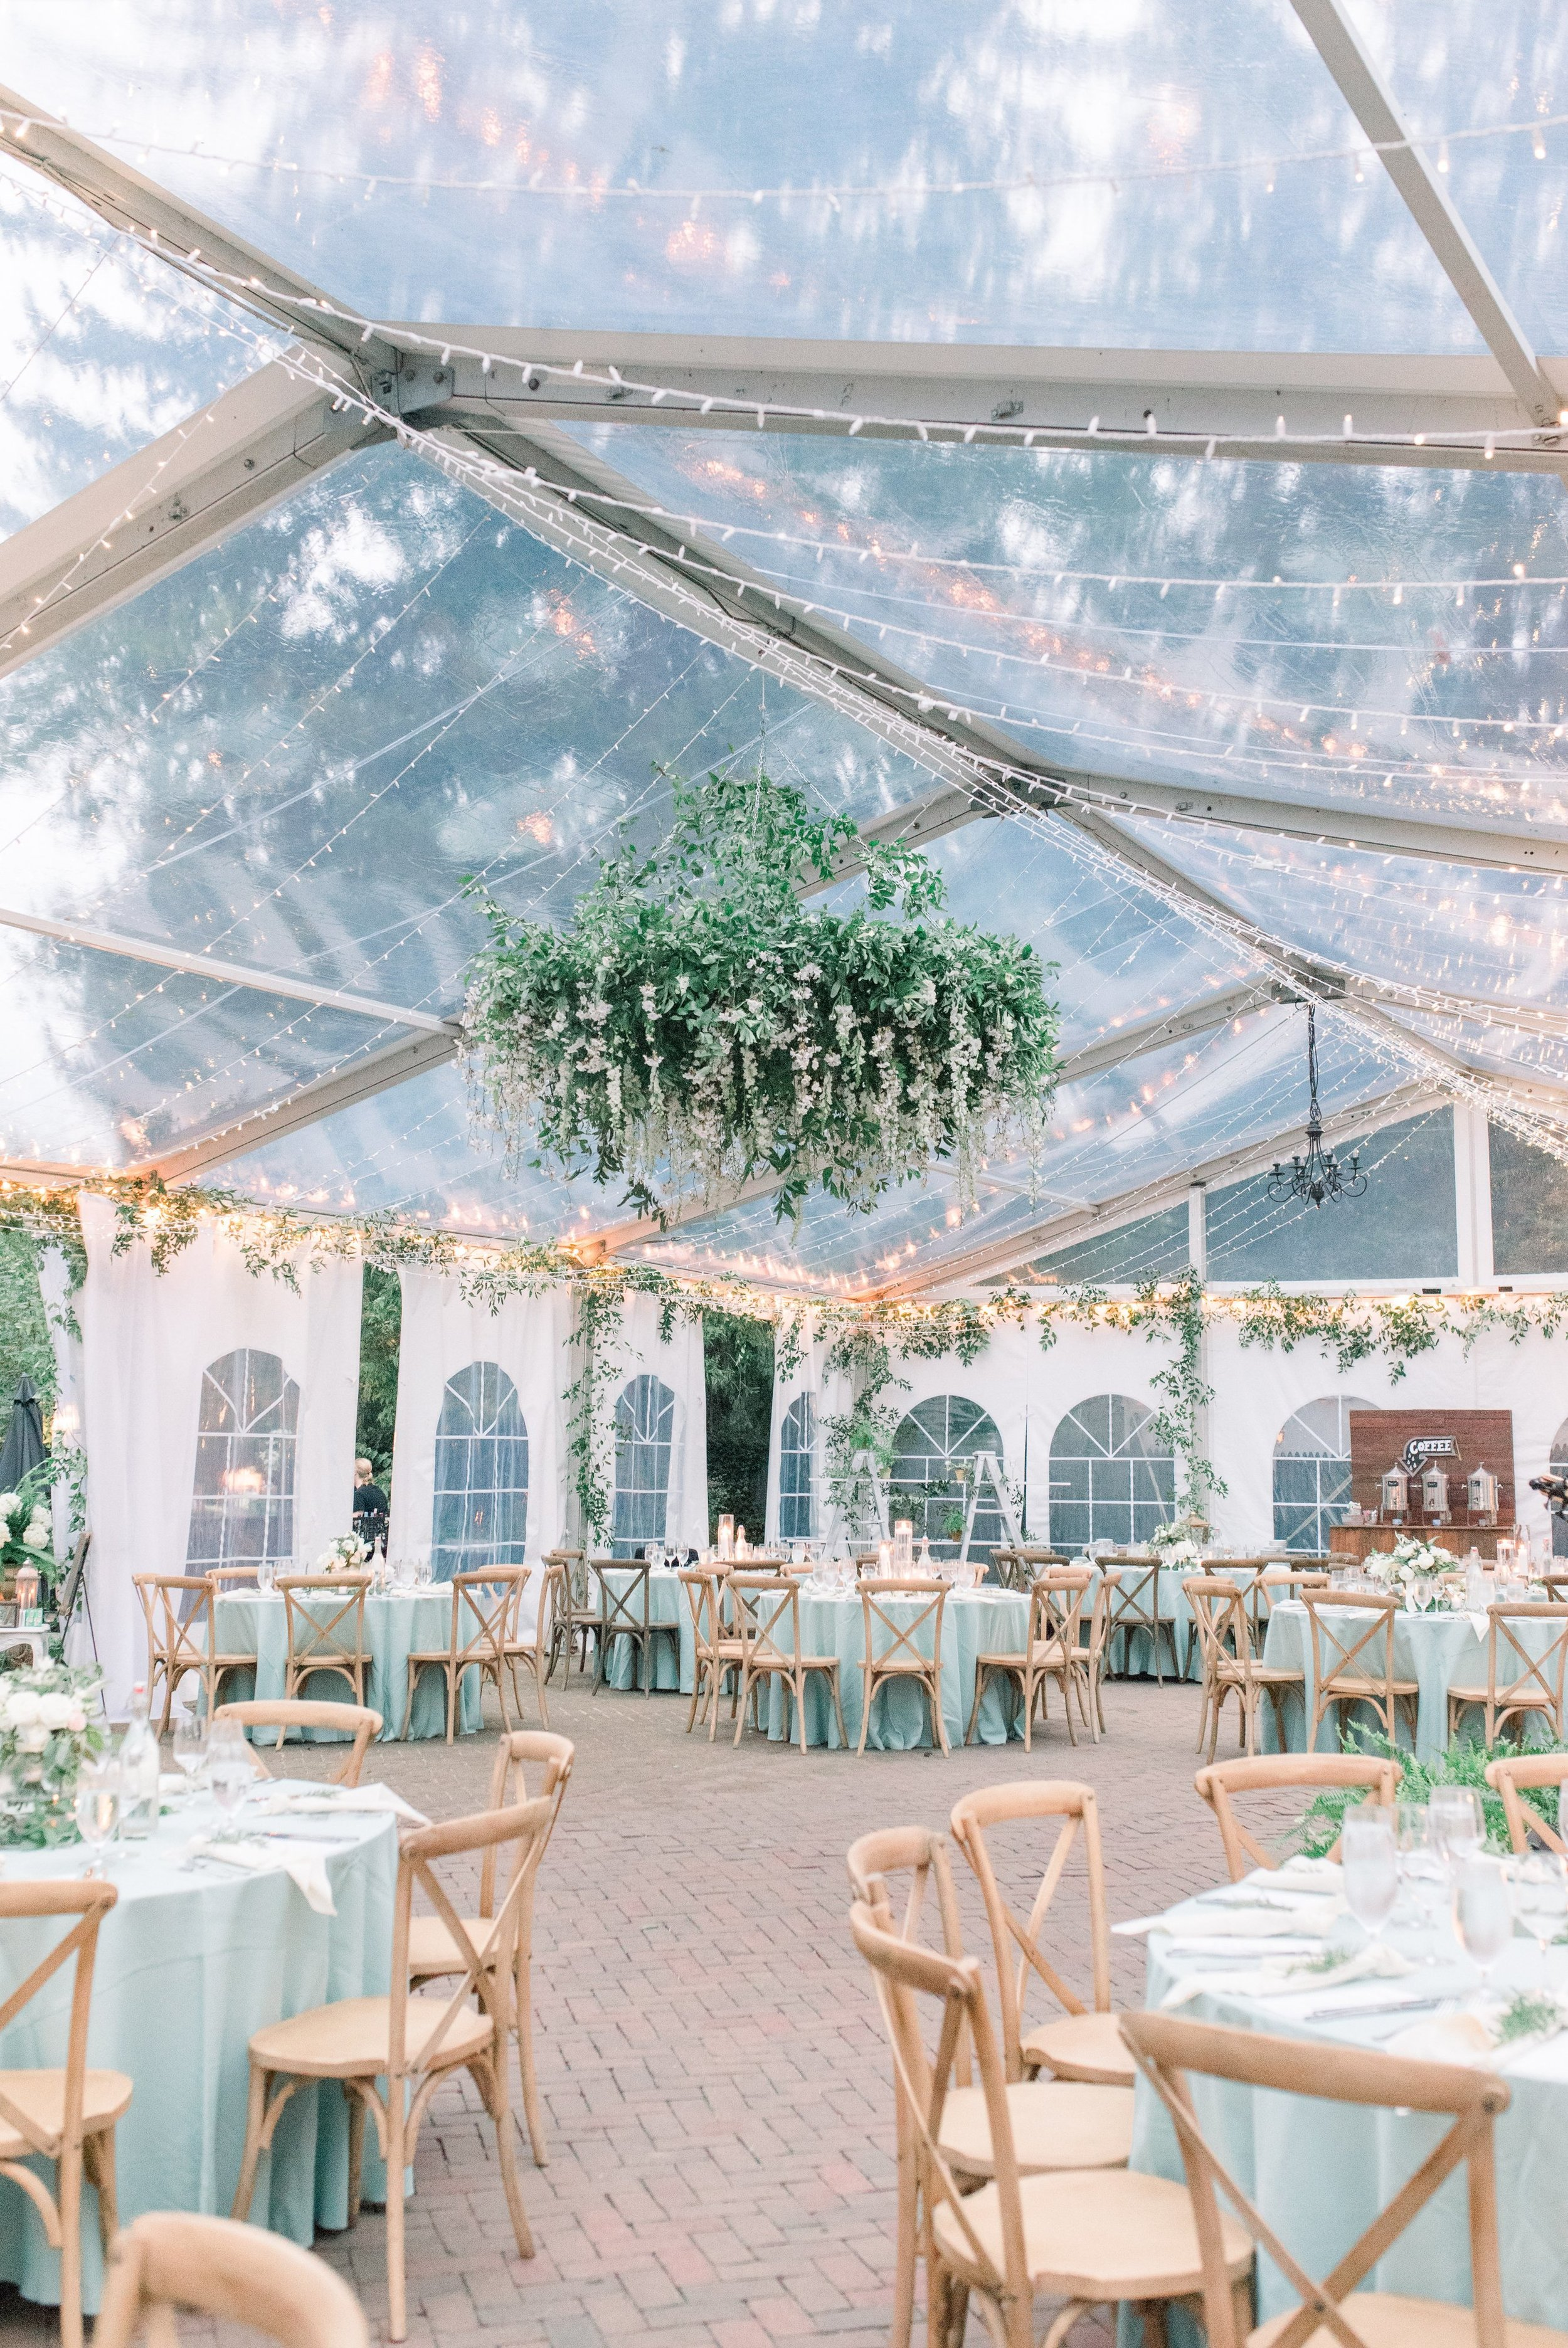 Inn at Fernbrook Wedding, Hanging Chandelier, Greenery Wedding, NJ Wedding, Tent Wedding, Tent Decor, Wedding Flowers, Muted Wedding, Cassi Claire Photography